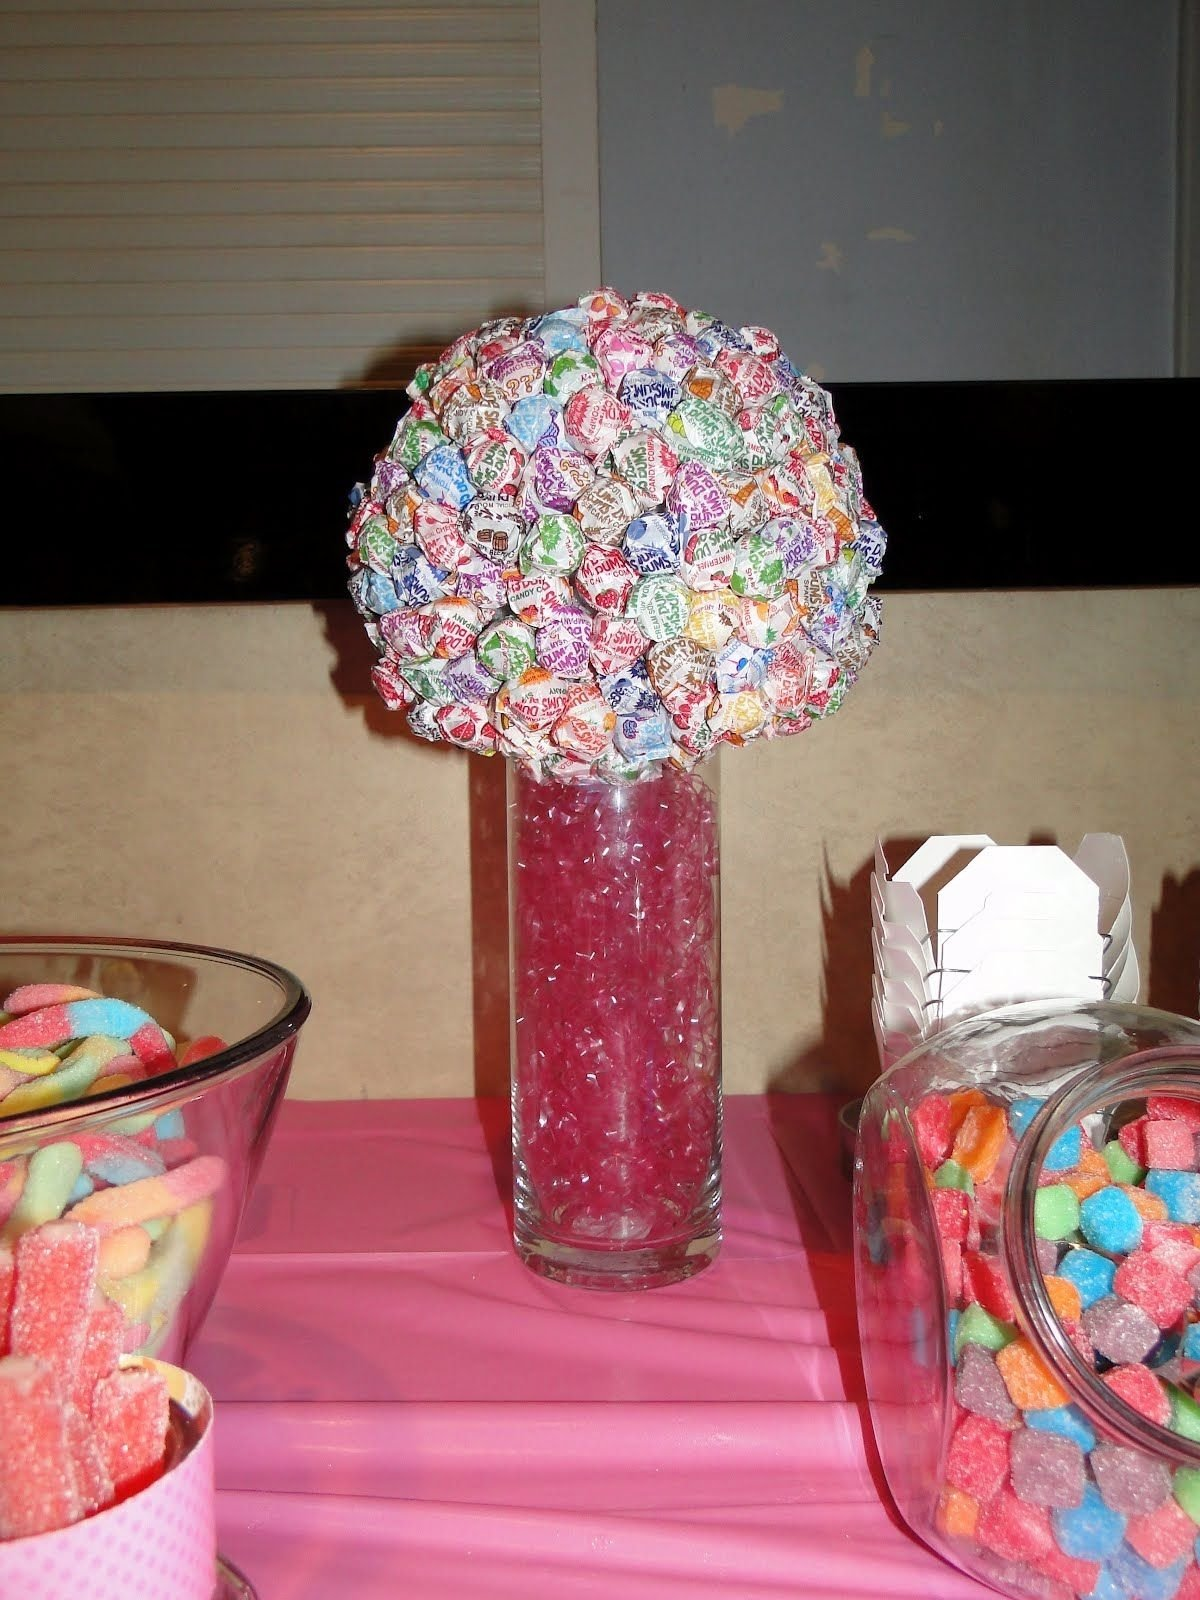 10 Lovely Girls 13Th Birthday Party Ideas girls 13th birthday party ideas sweet 13th birthday party 13th